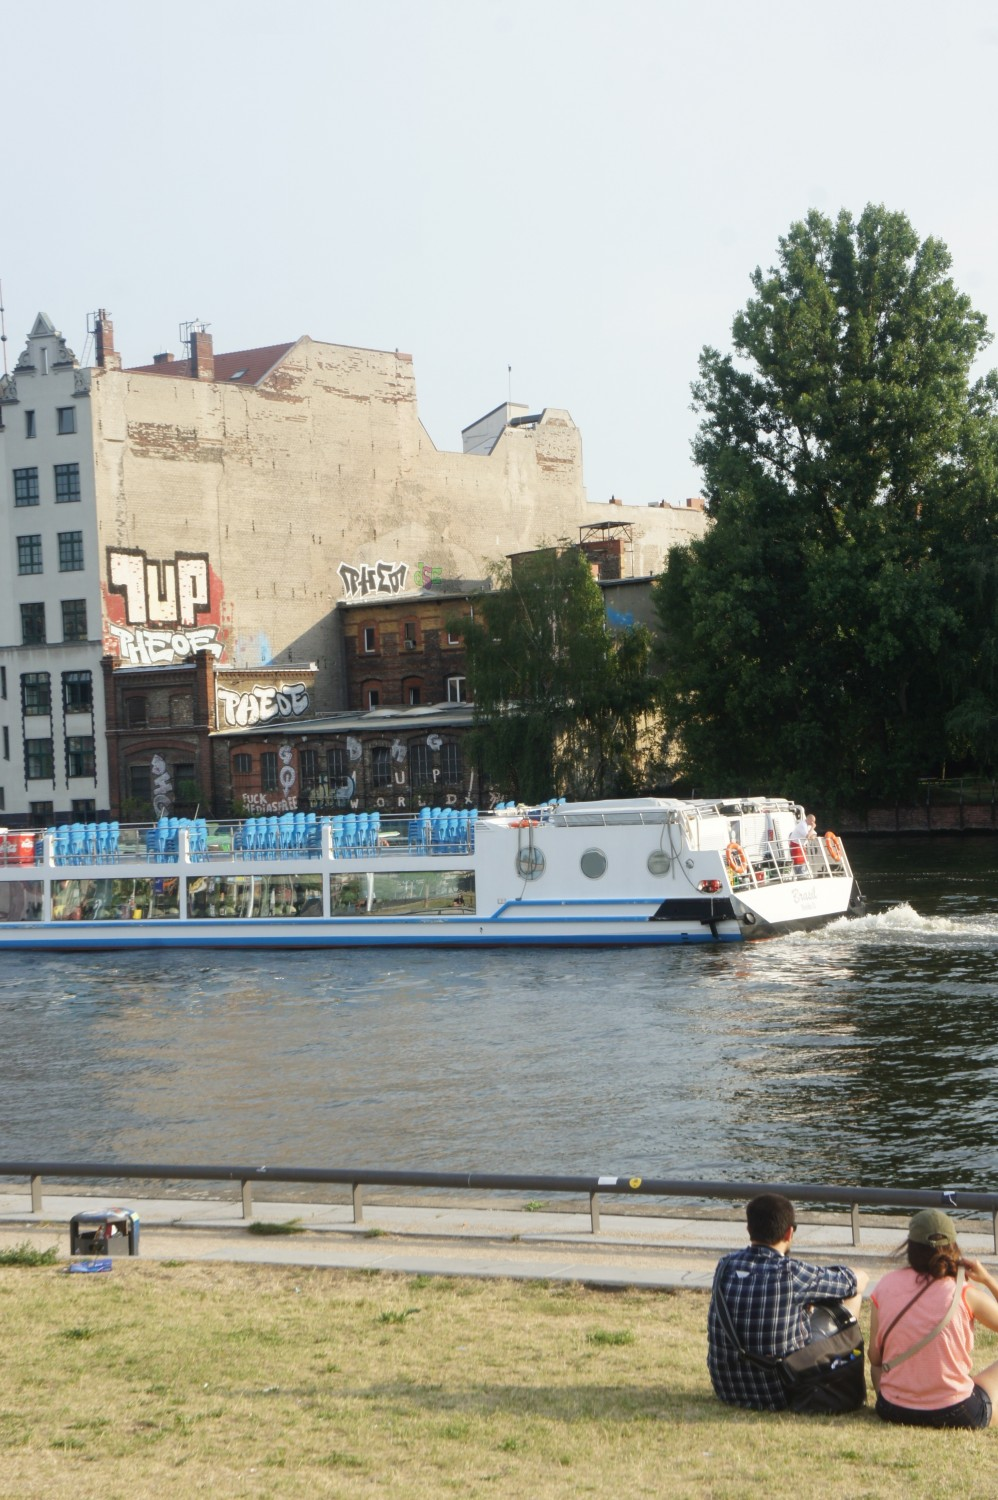 Relaxing on the Spree River bank